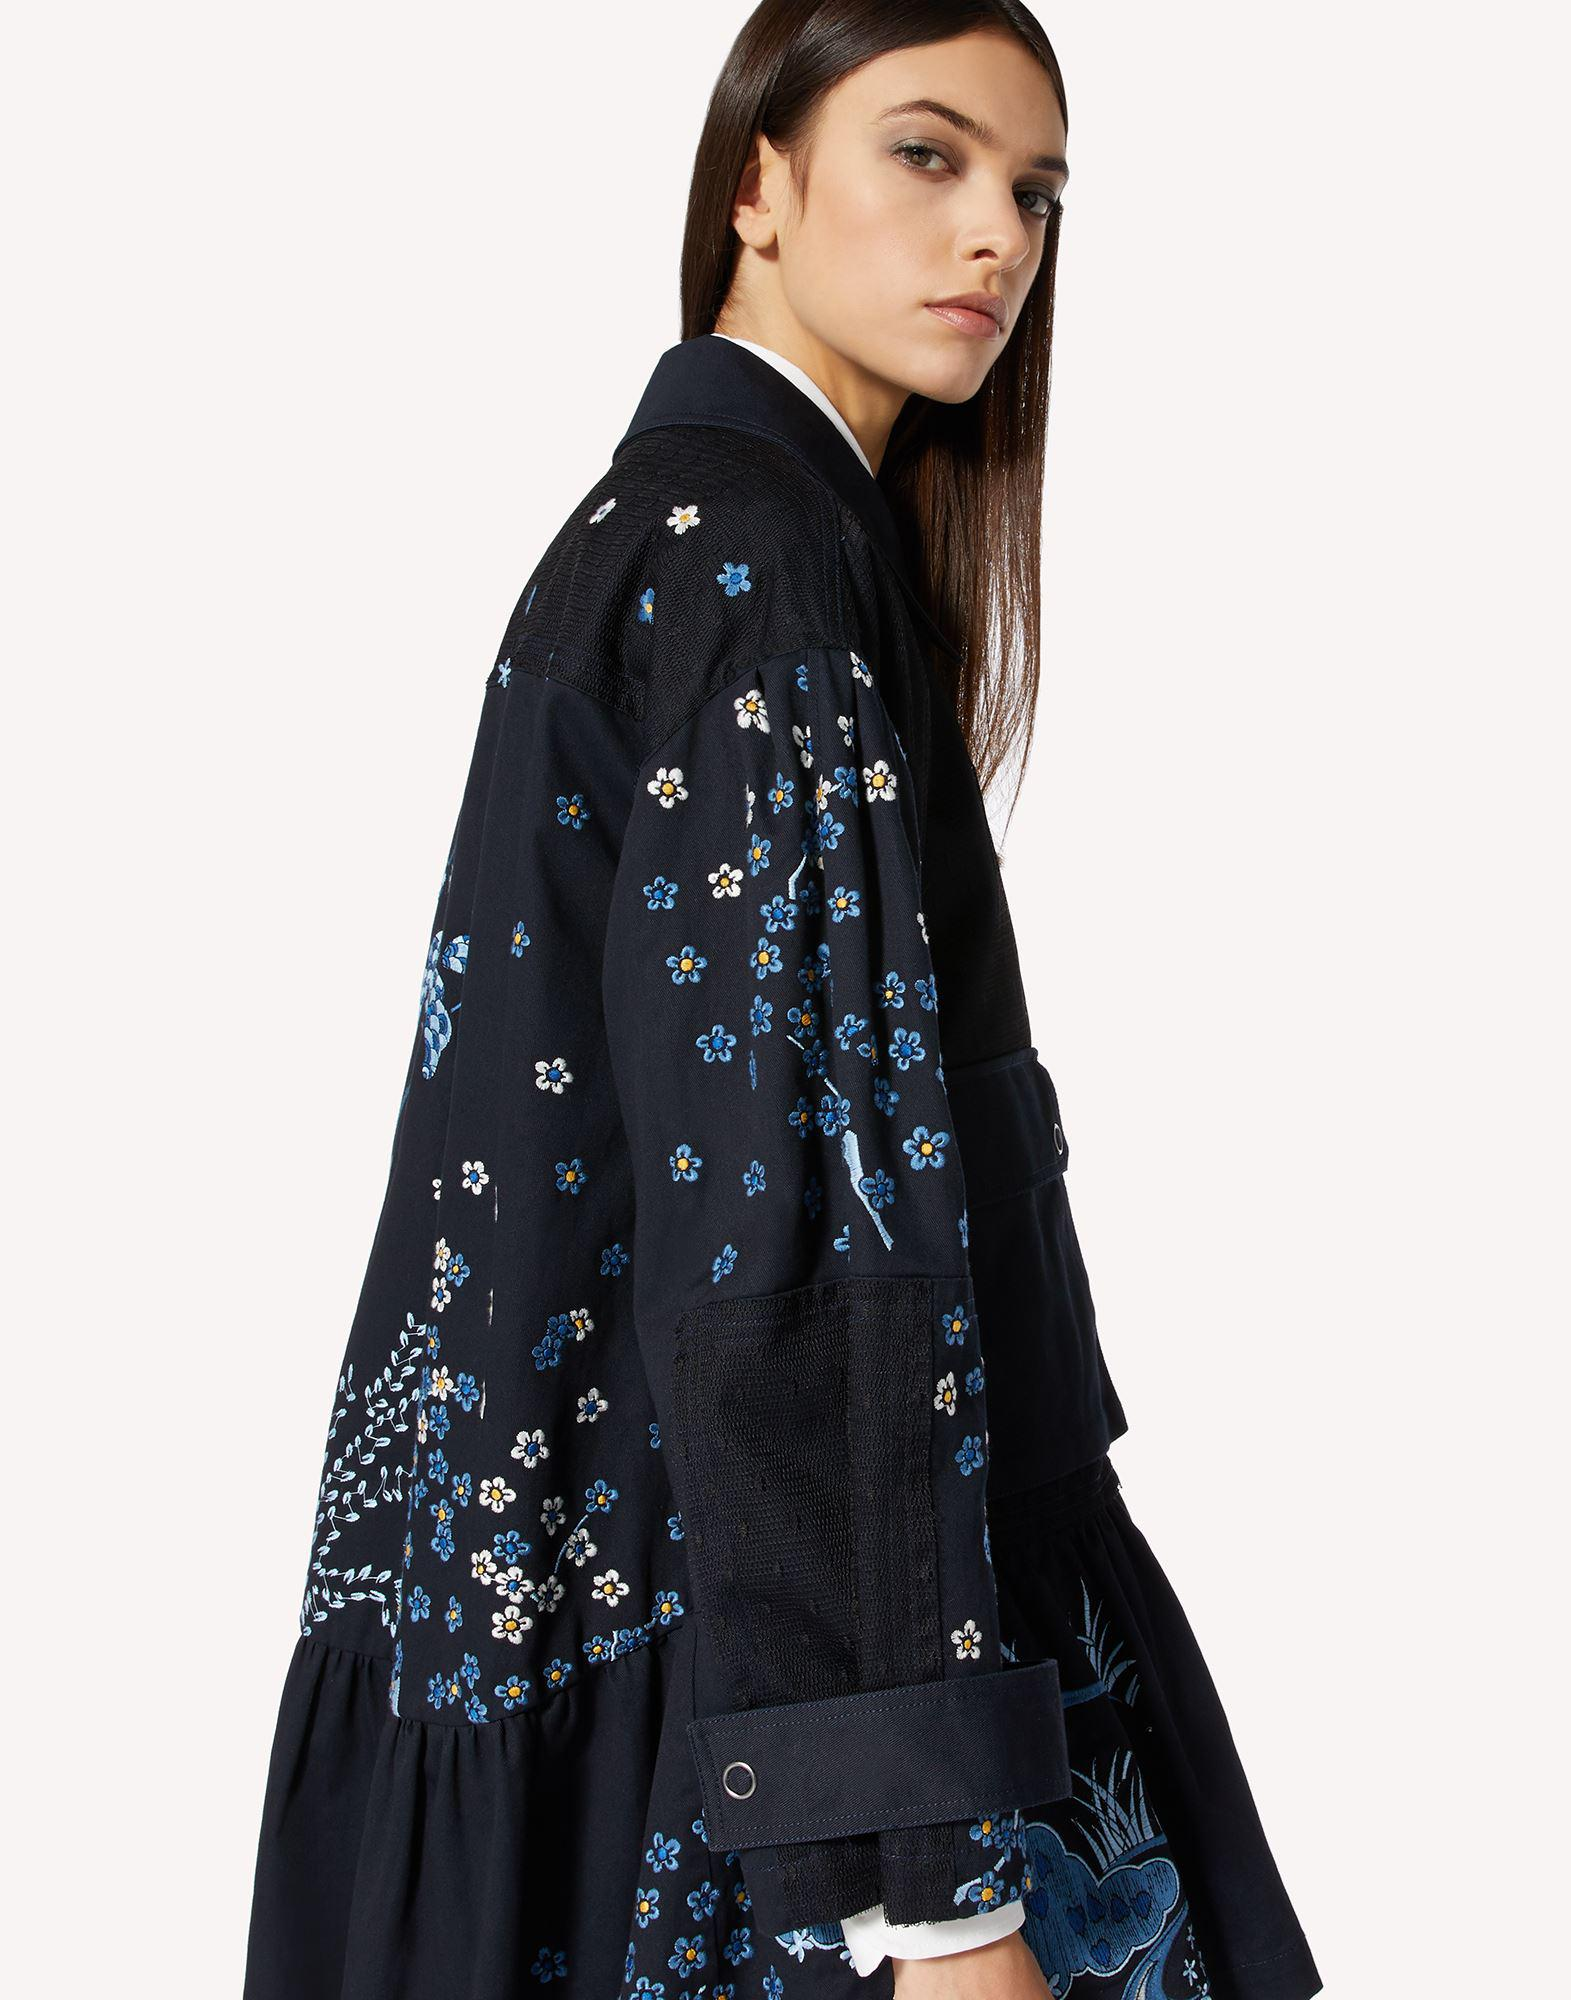 ASIAN TOILE DE JOUY EMBROIDERED PEA COAT 3